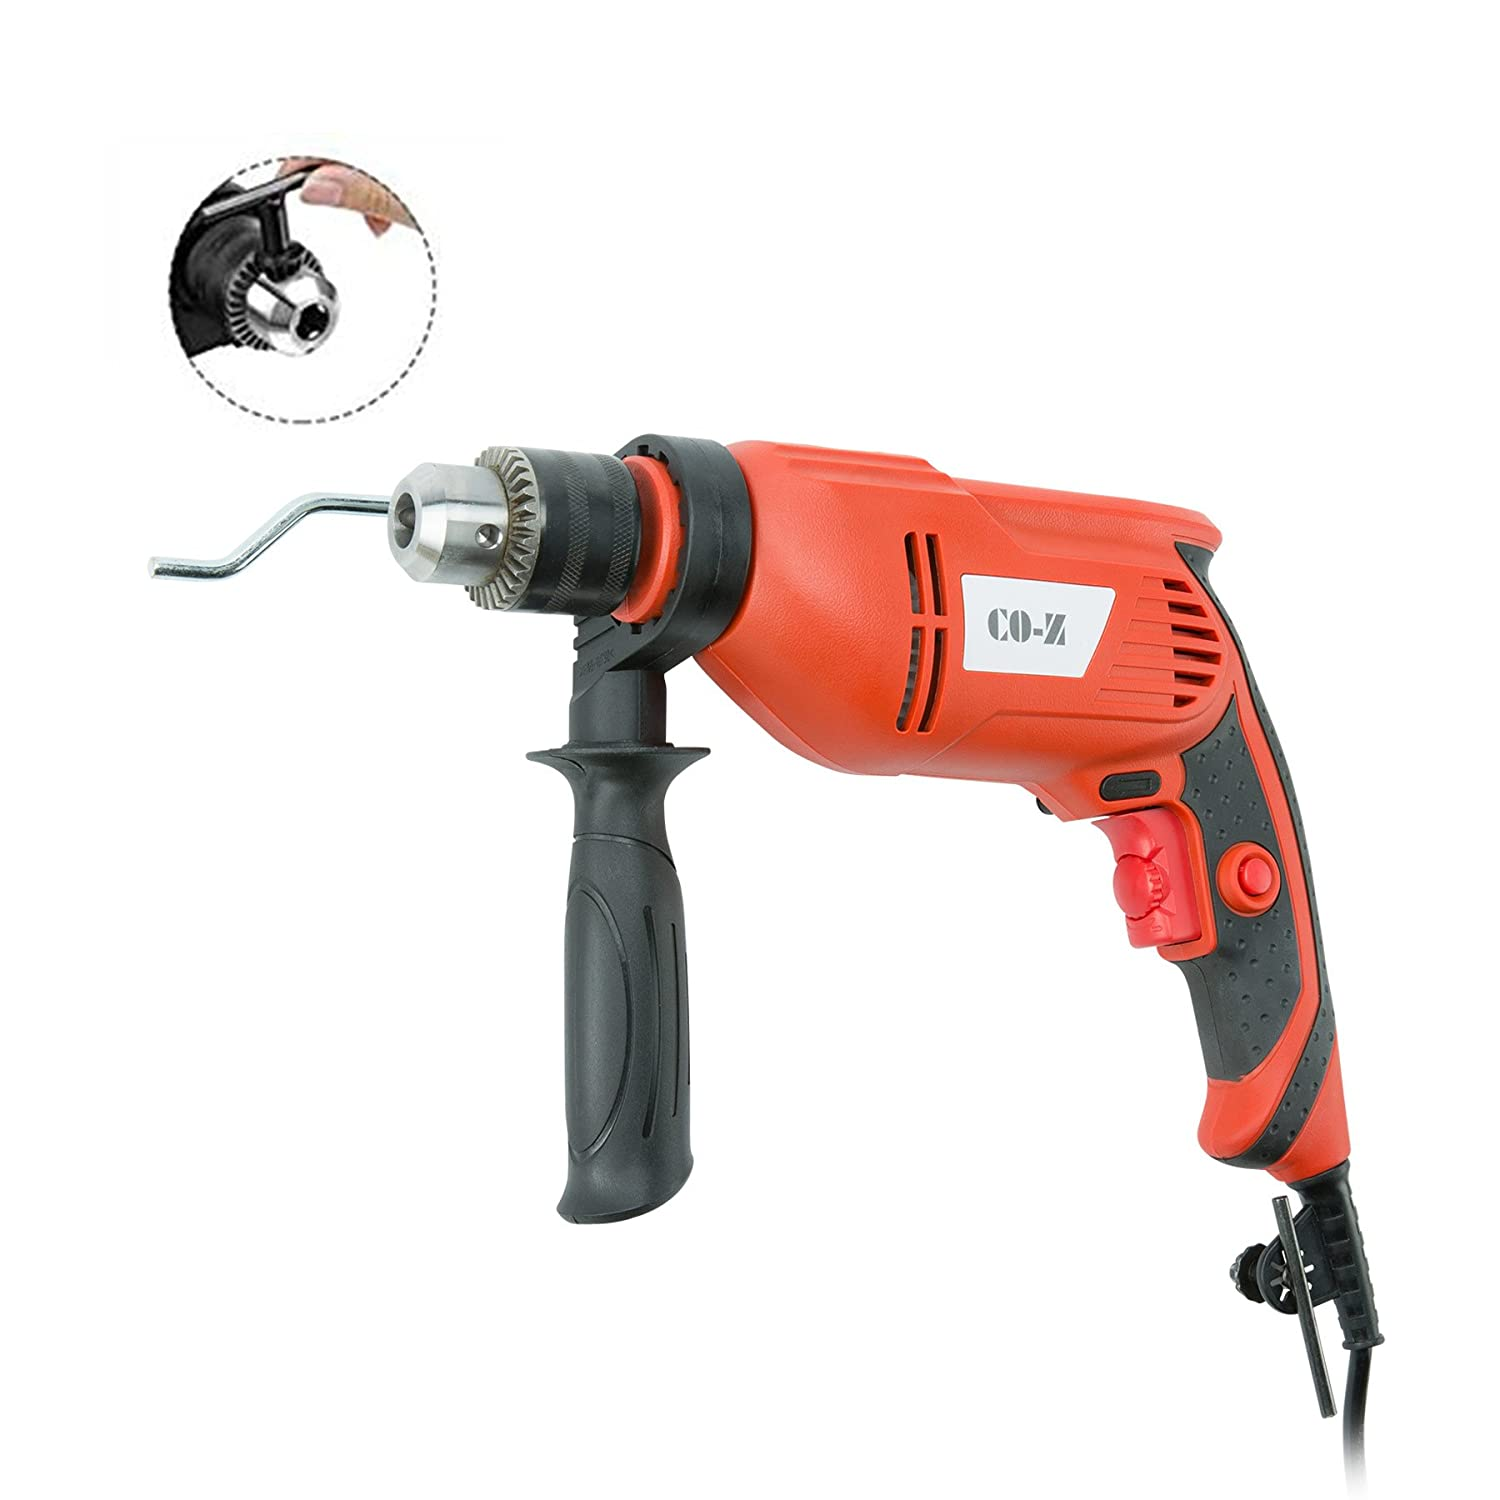 CO-Z Hammer Drill, 3000rpm Corded Dual Drill Switch Between Electric Drill and Impact Drill, 750W Powerful 1/2 3/8 Drill with Adjustable Speed for Drilling Wood, Steel, Masonry, Cement, Concrete